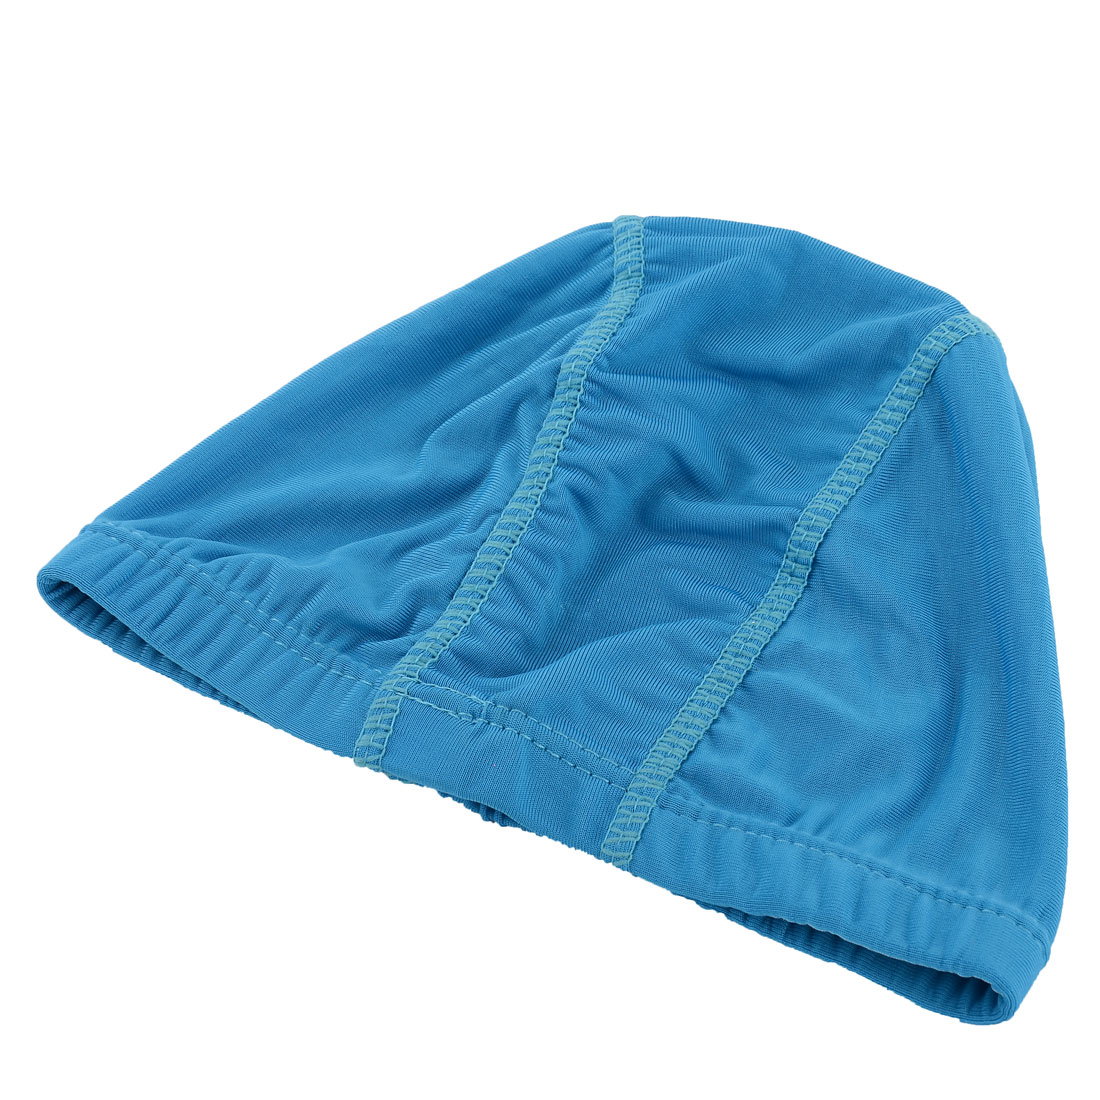 Swimming Elastic Fiber Dome Shape Headgear Headpiece Stretchy Hat Cap Blue